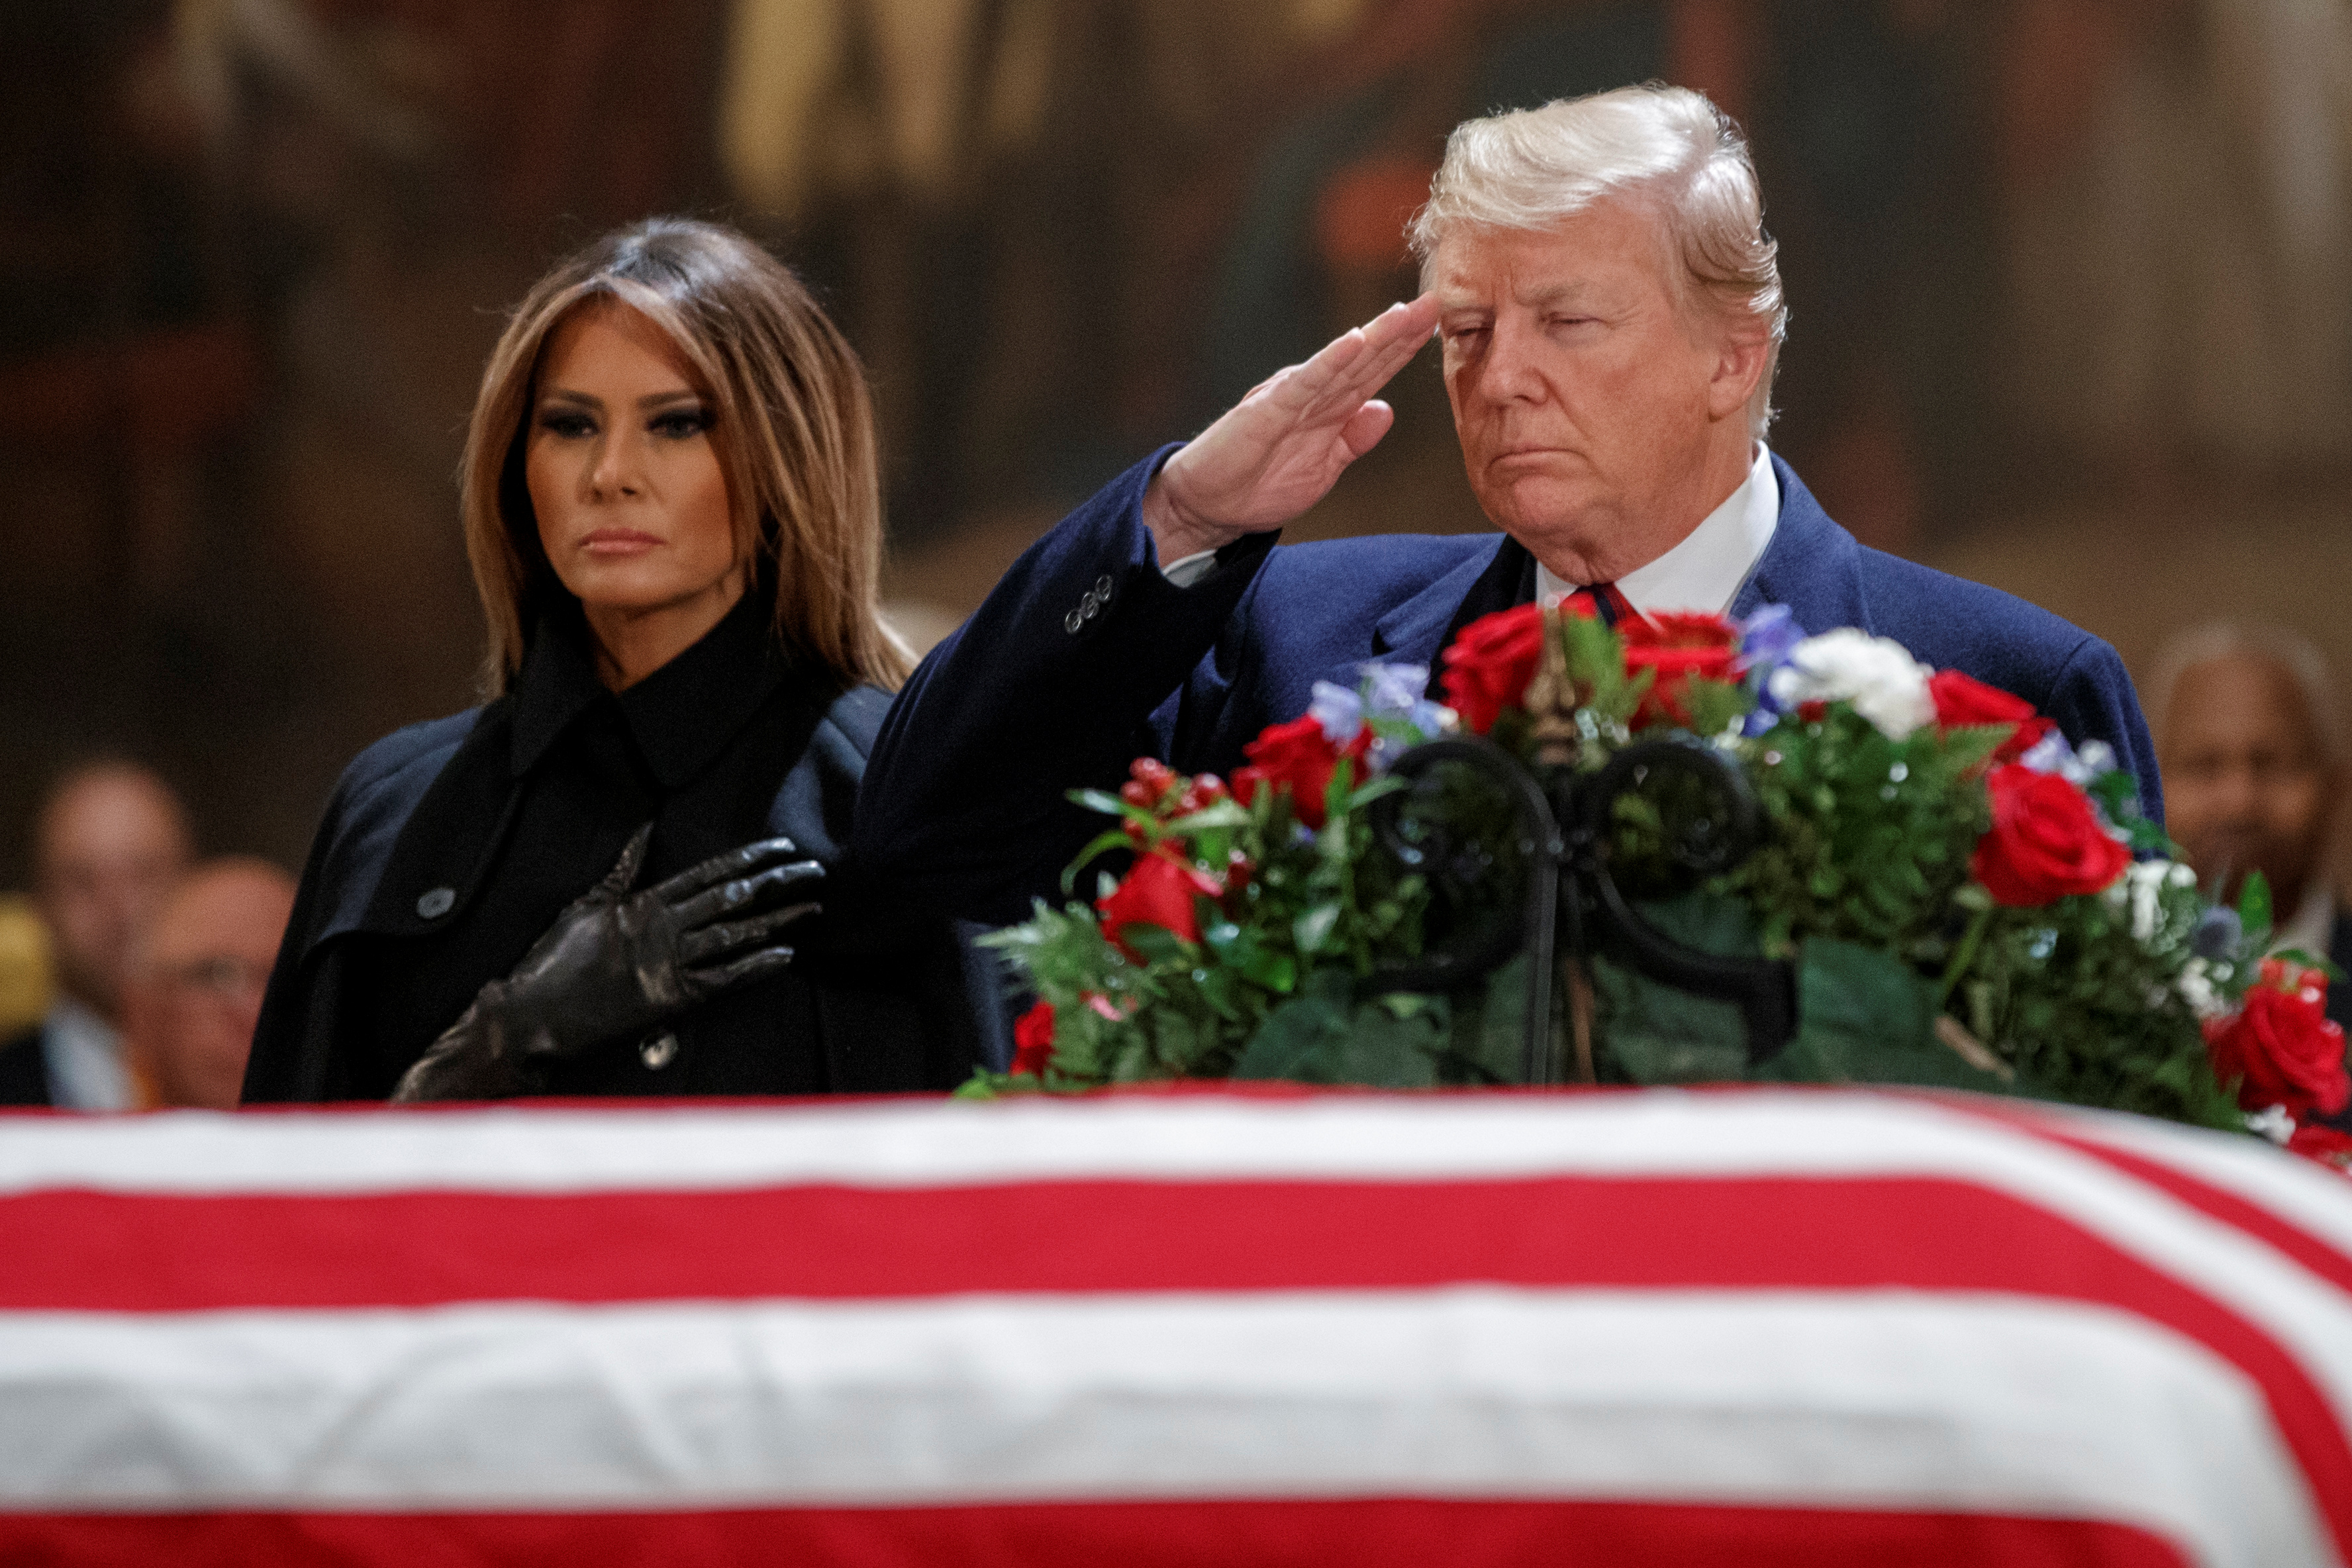 US President Donald J. Trump, with First Lady Melania Trump, salutes the casket containing the body of former US President George H.W. Bush in the Rotunda of the US Capitol in Washington, DC, December 3, 2018.